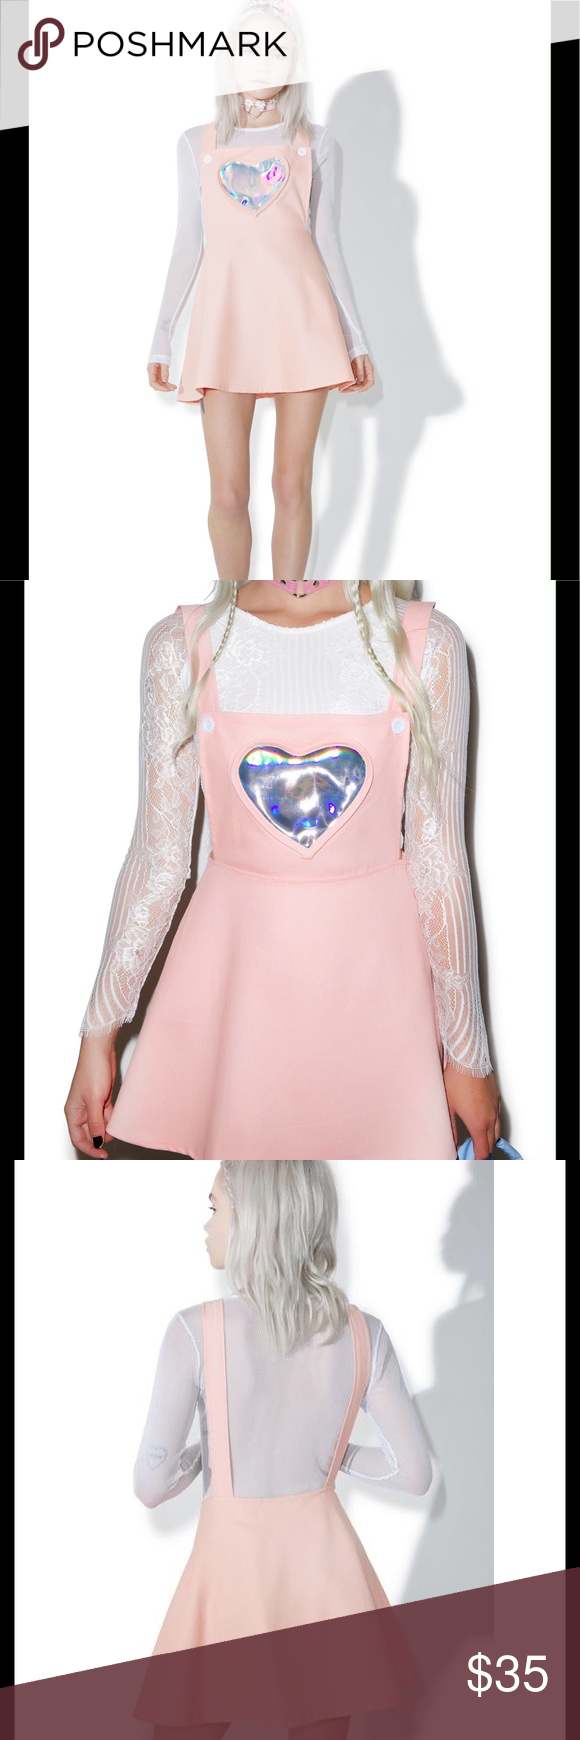 4b245ef5252 Dolls Kill Hologram Heart Pink Overall Skirt Dress Electra Heart Overall  Dress is gunna shoot  em with lovey-dovey heart beams! This adorable overall  dress ...